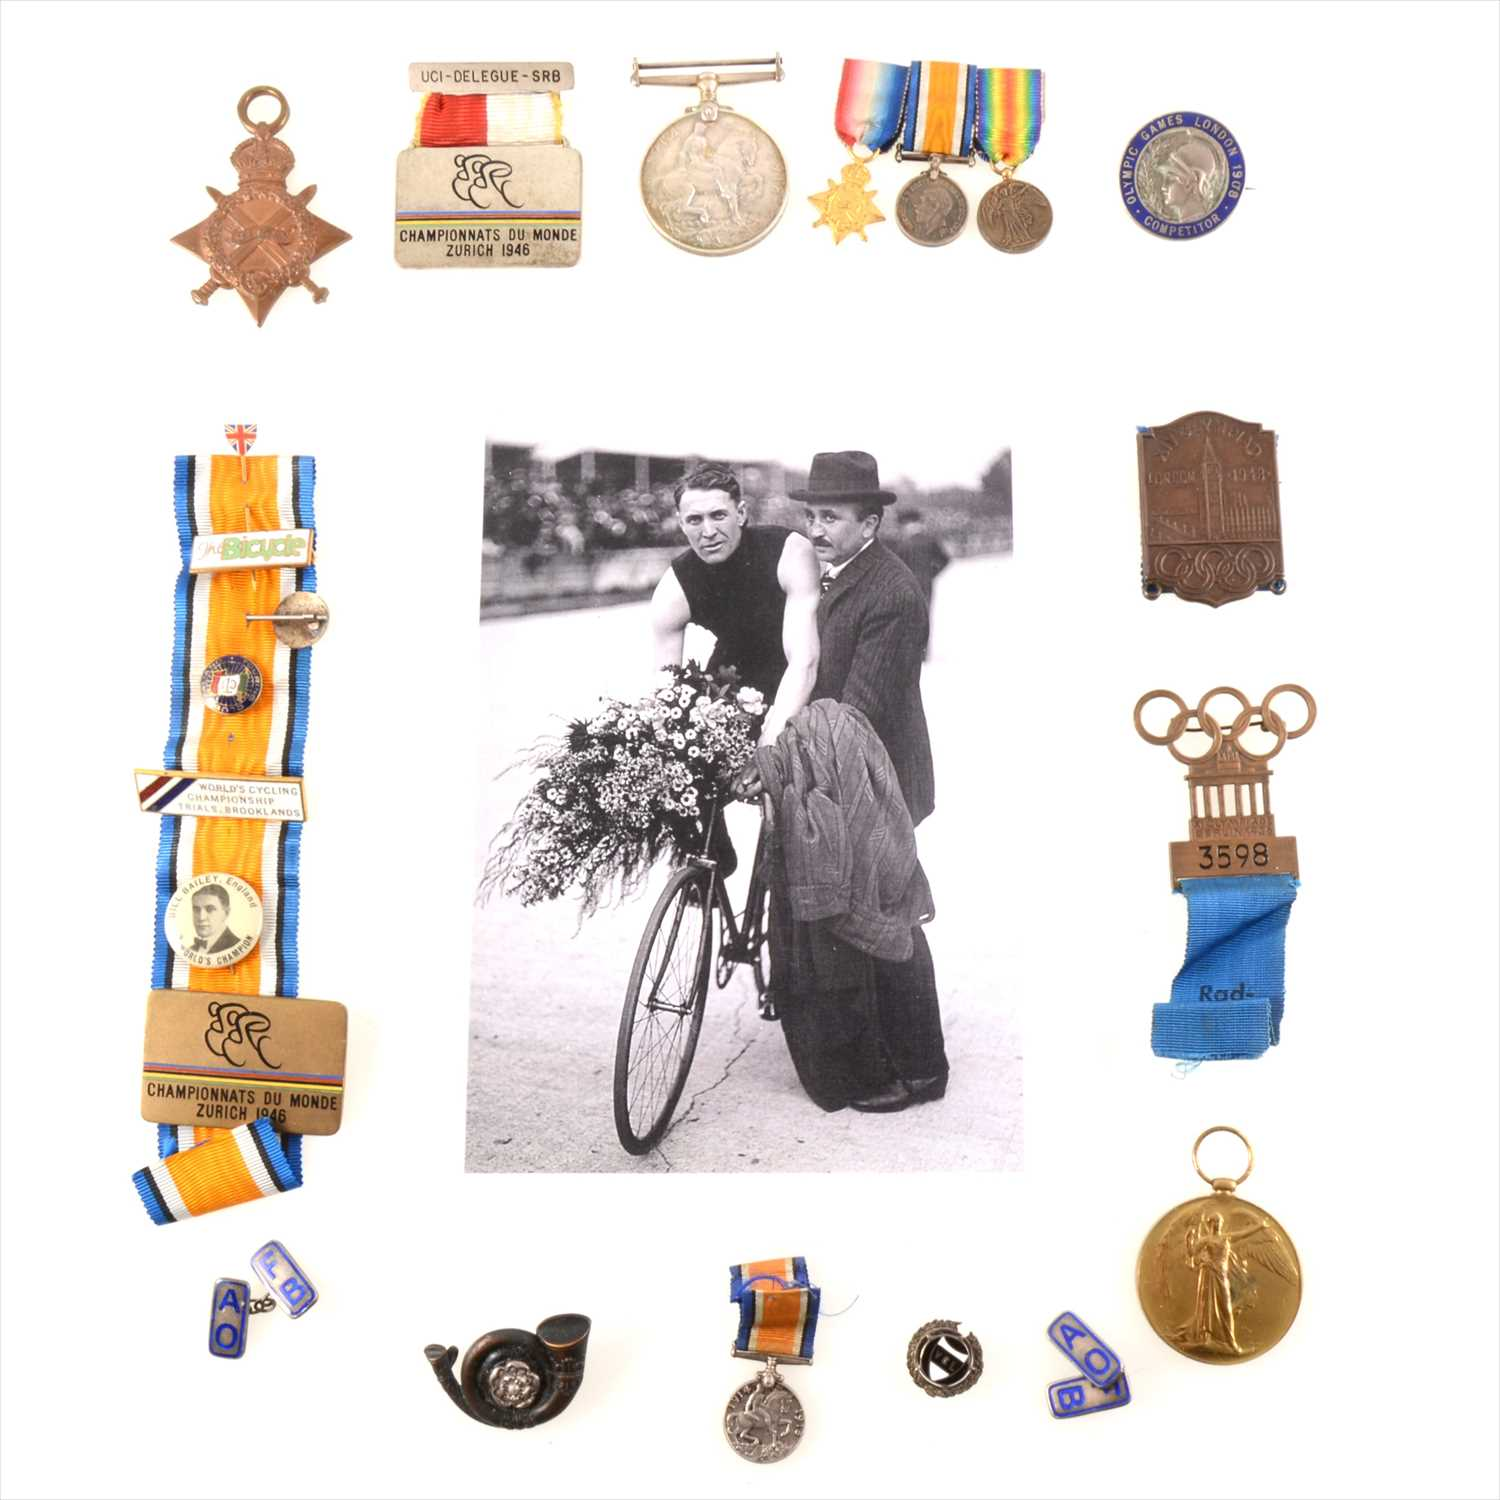 """Lot 179 - The London 1908 Olympic Games Competitor badge of William """"Bill"""" Bailey, Sprint Cycling World Champion 1909-1911"""